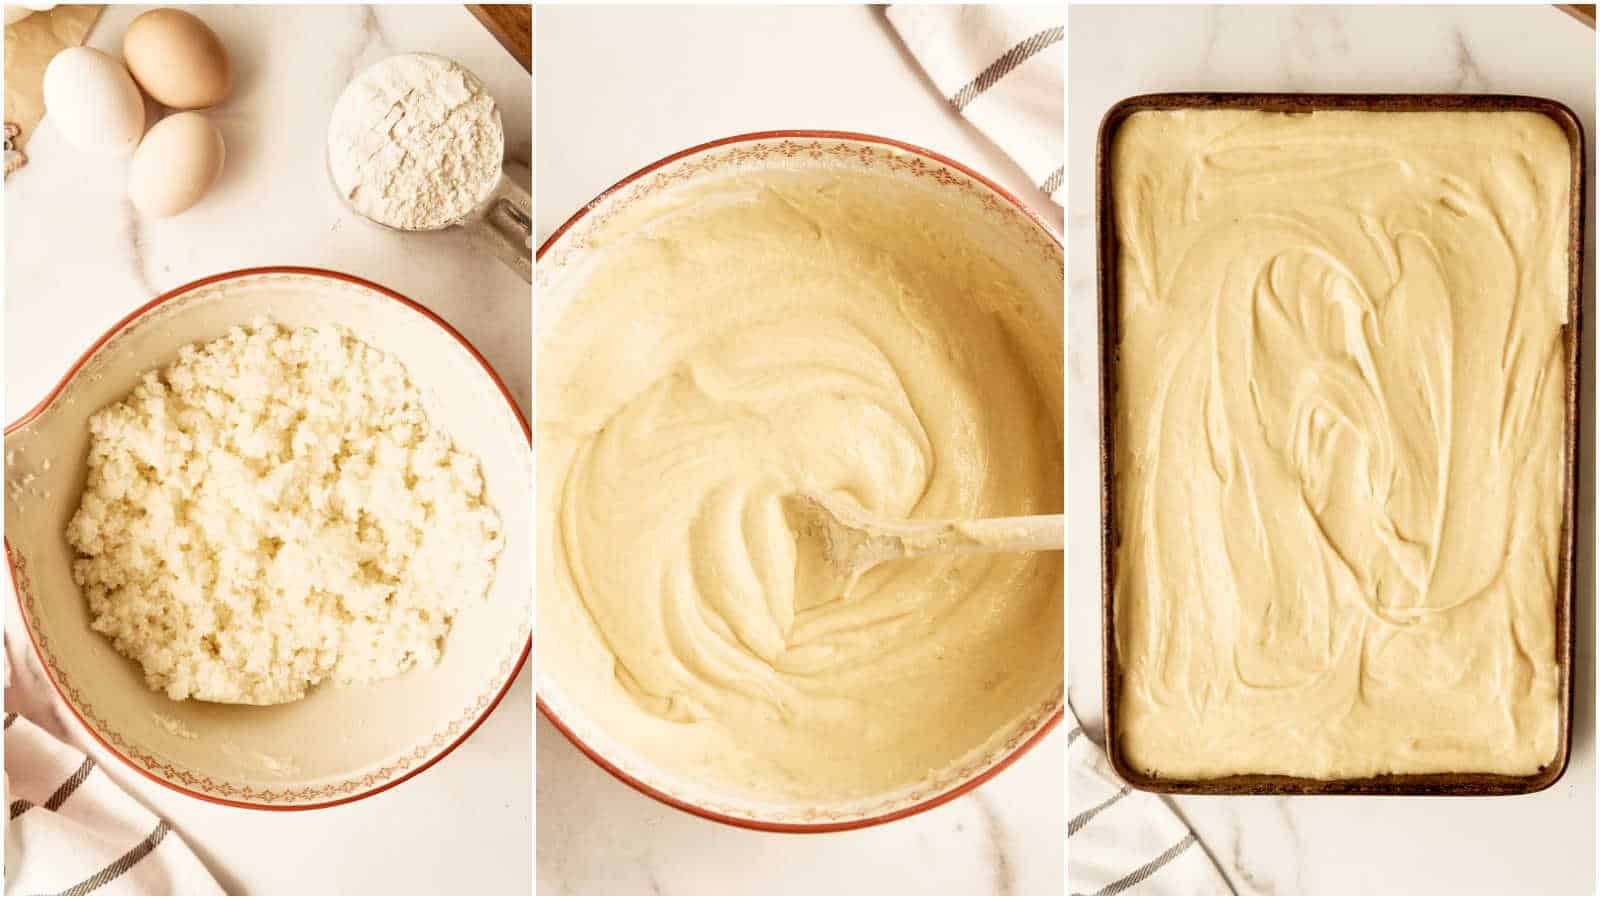 gird of 3 images showing butter and sugar, finished batter in bowl, and batter poured into sheet cake